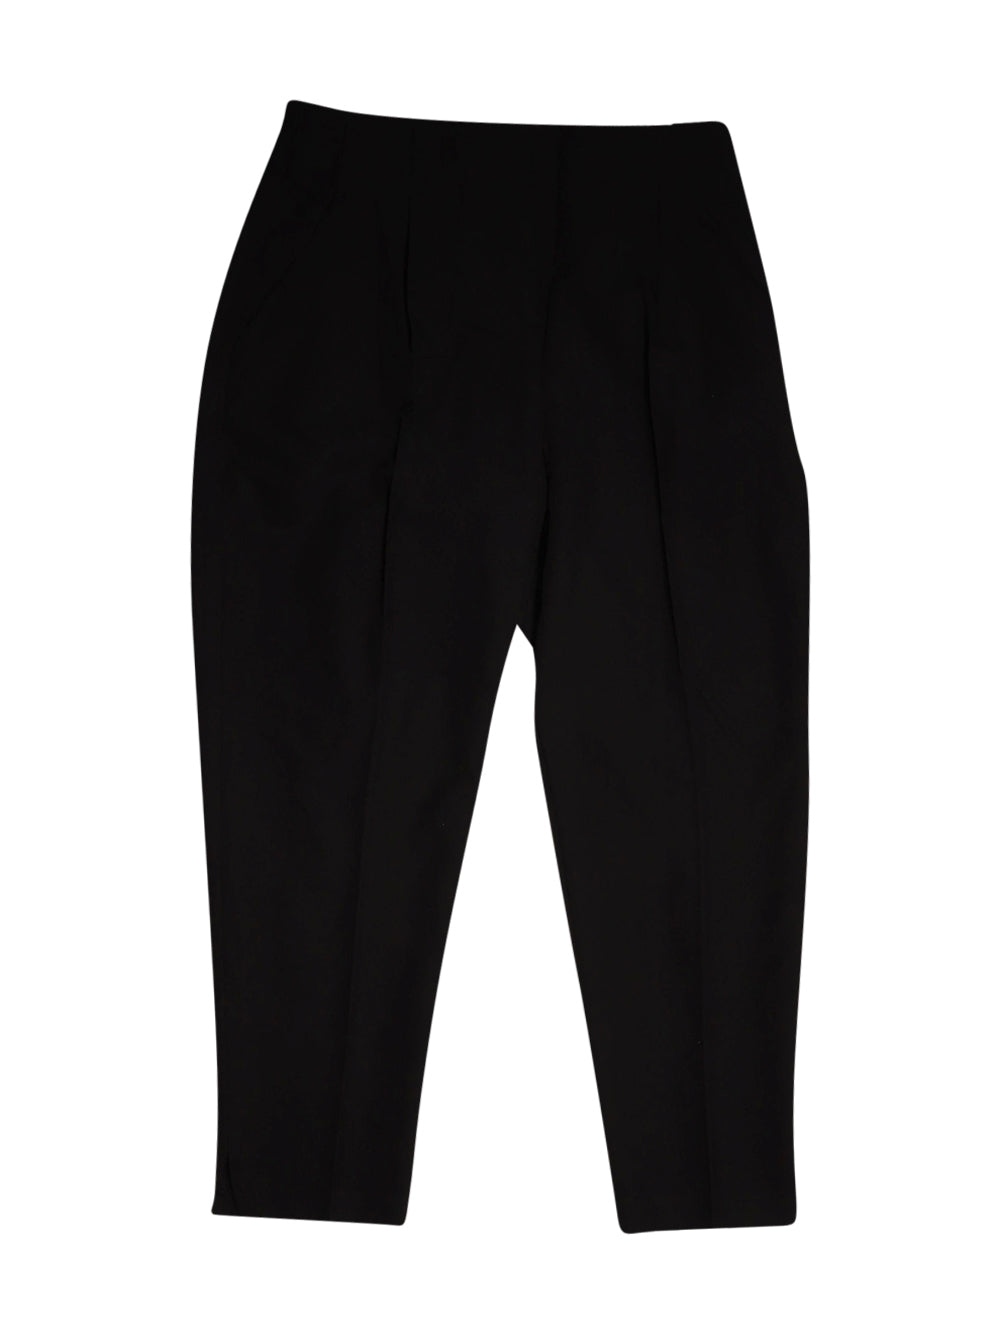 Front photo of Unworn Asos Black Woman's trousers - size 10/M